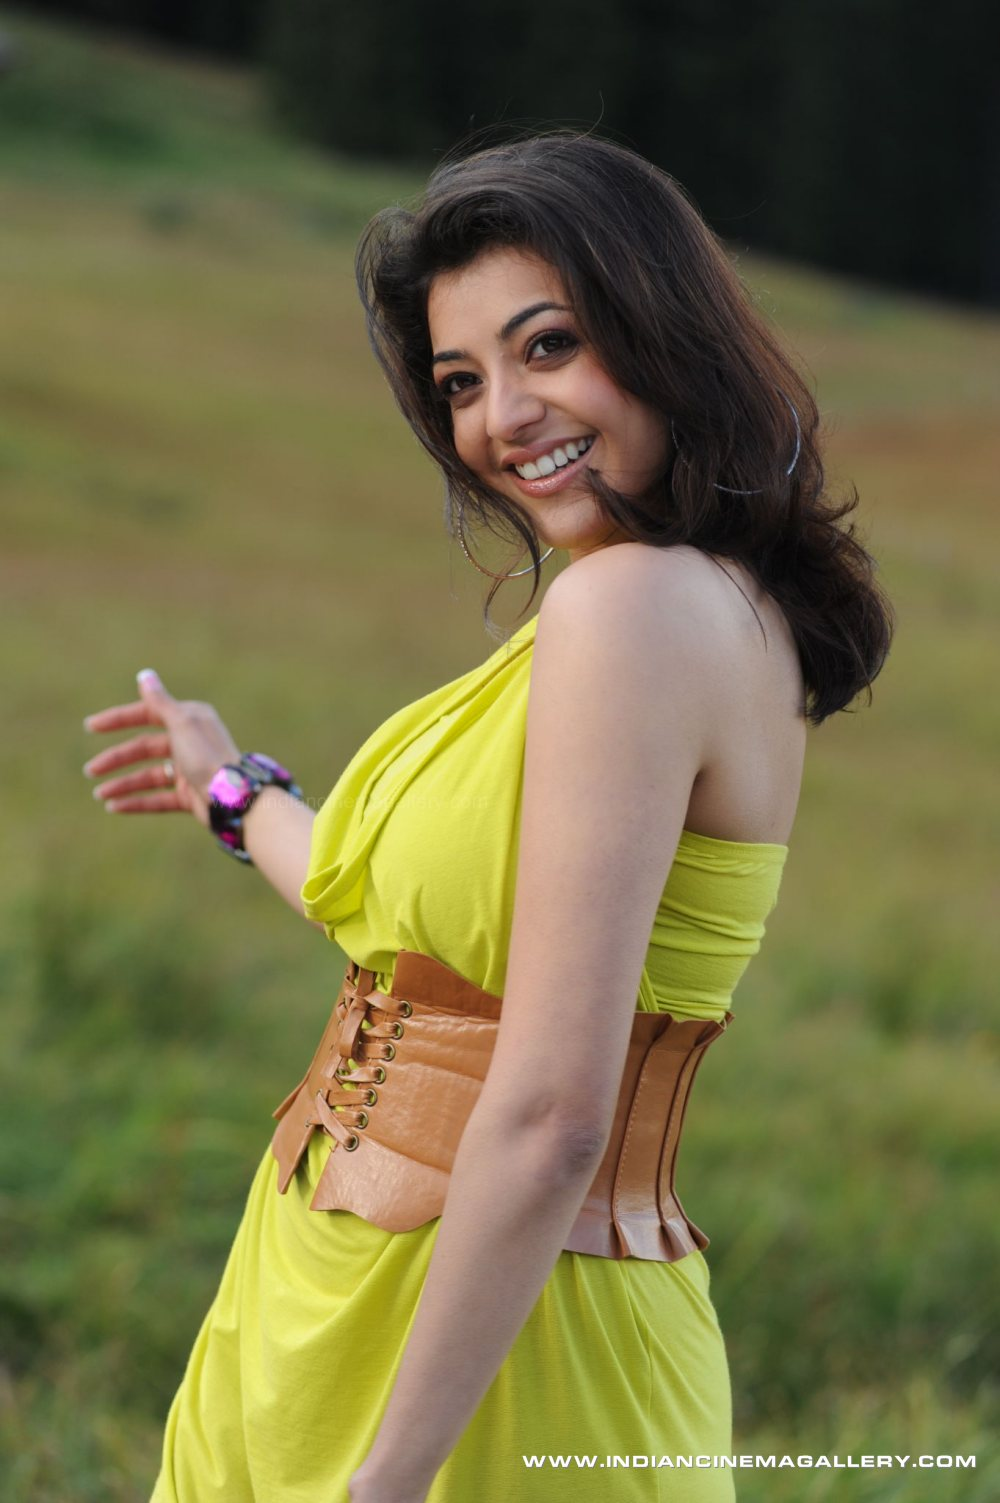 Hot VIDEOS: Kajal Agarwal Latest Hot and Sexy Photo Gallery Thigh Show